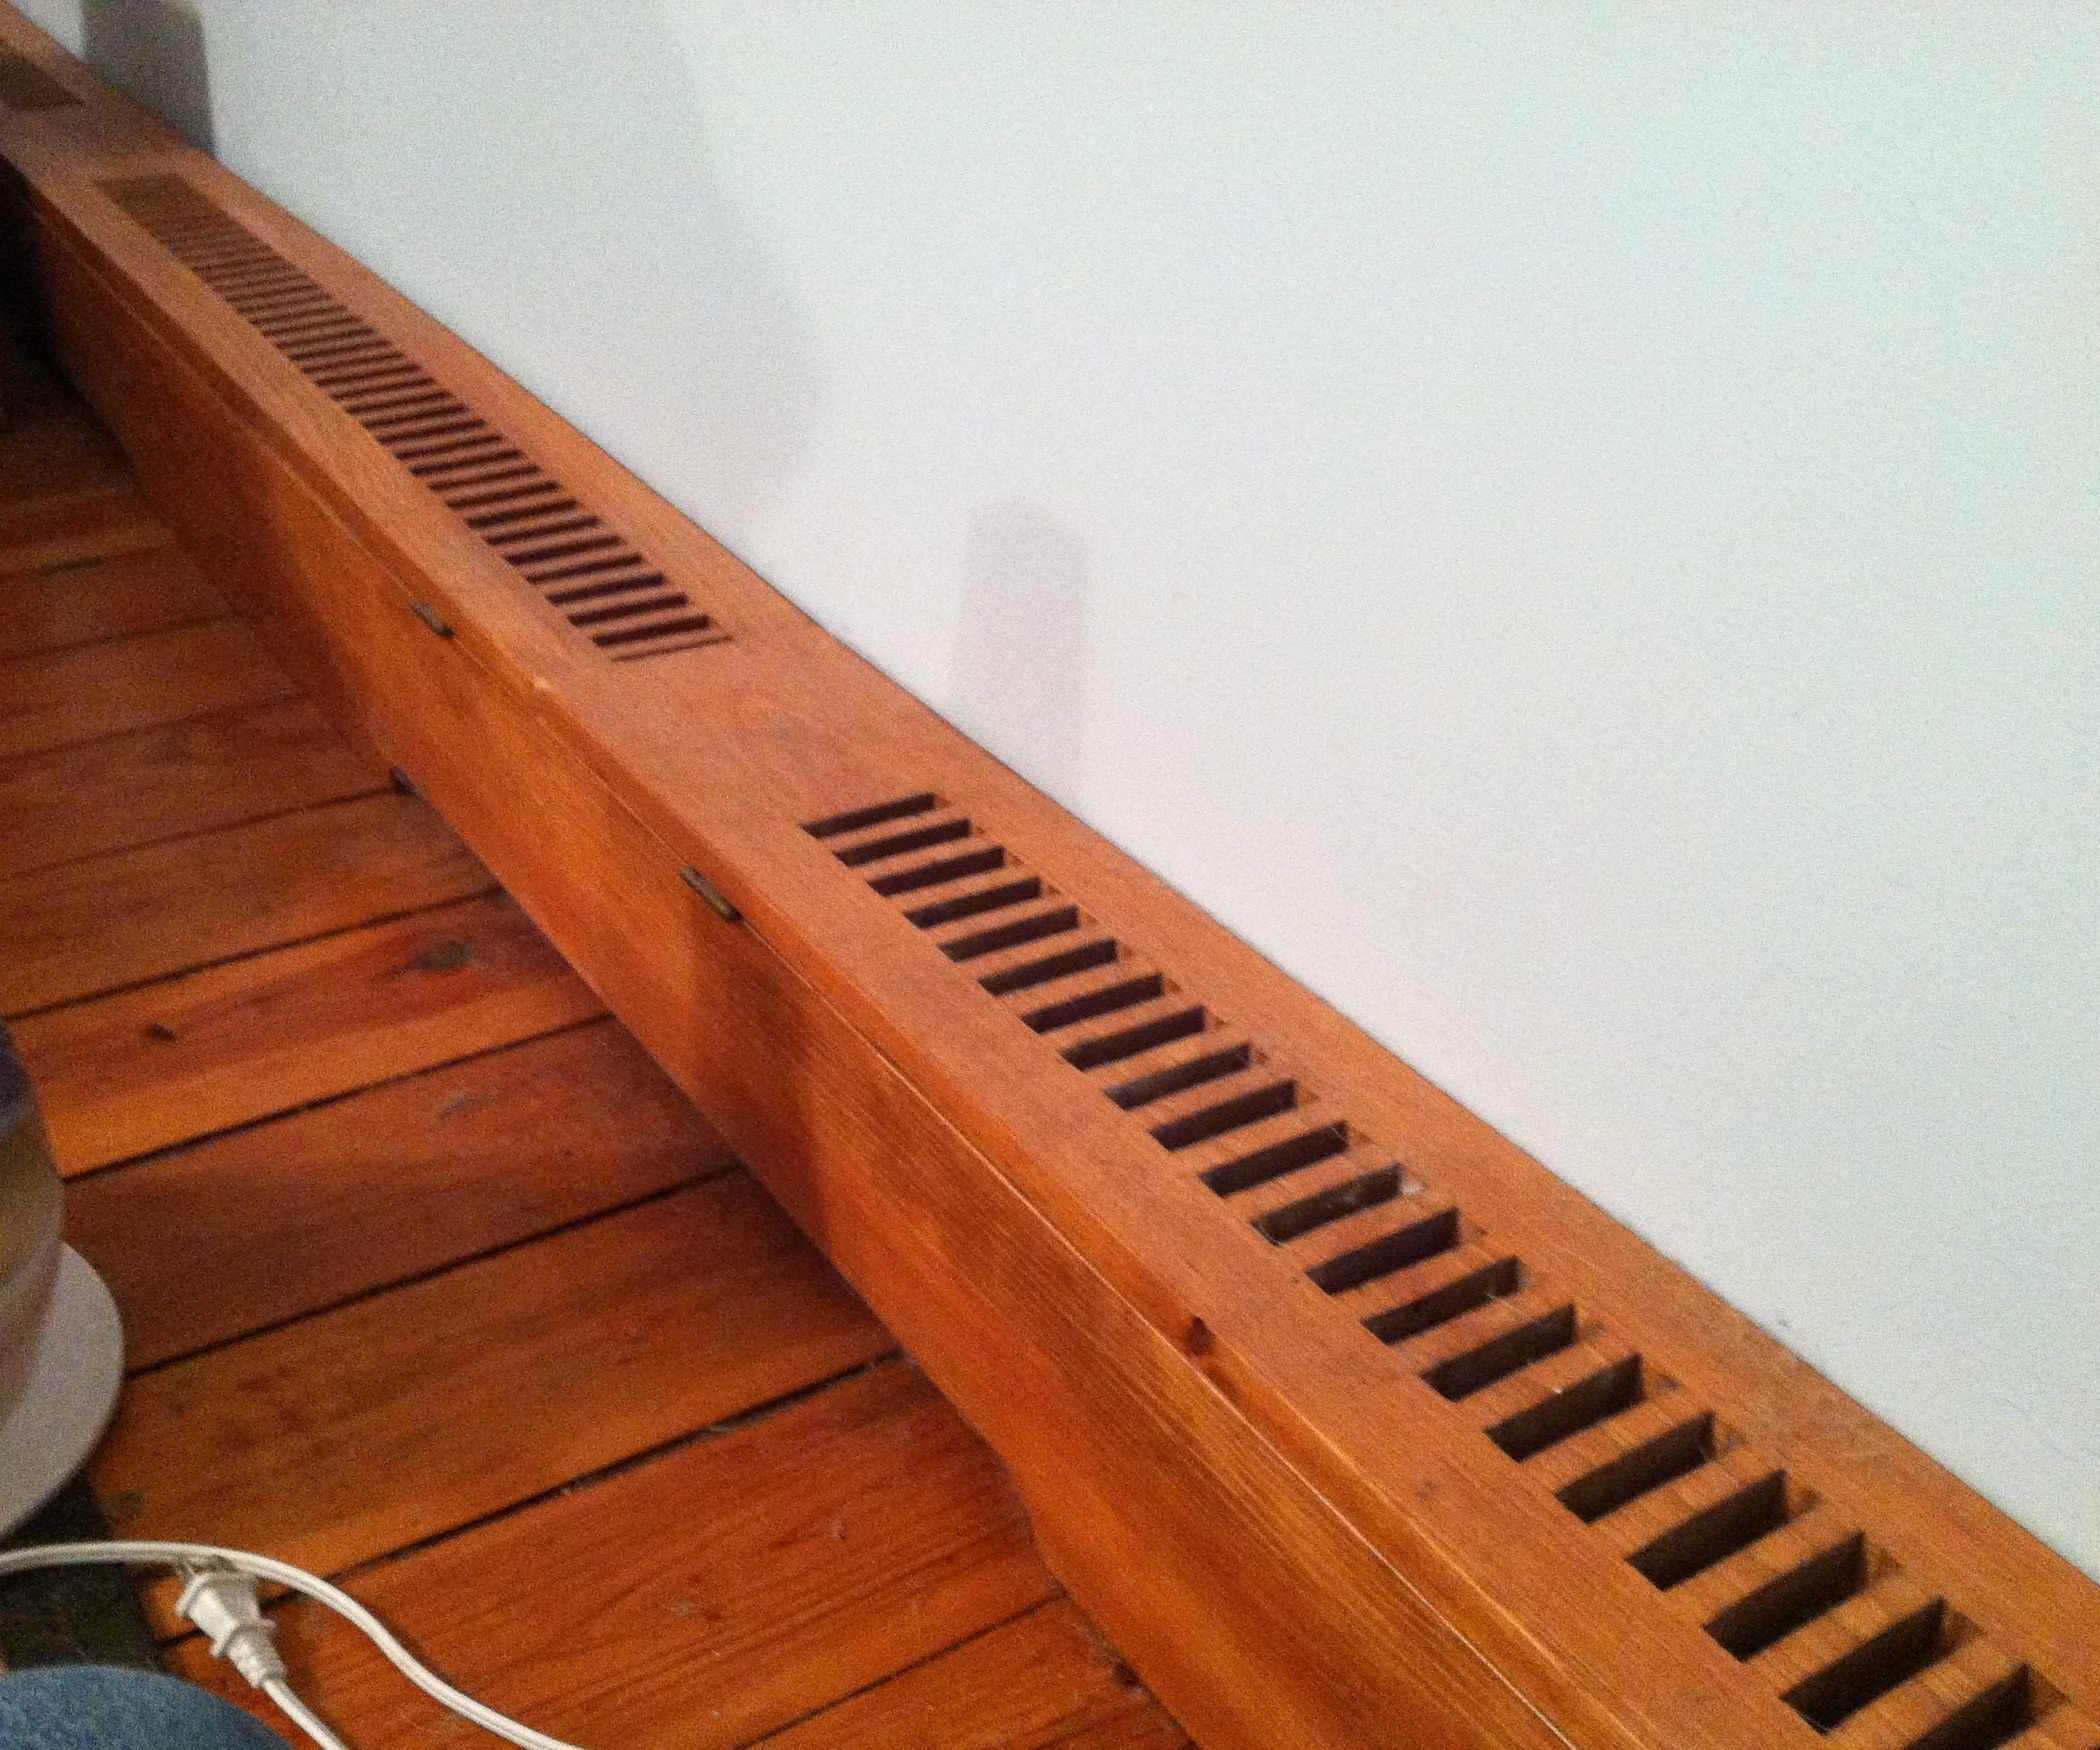 How To Make Wooden Baseboard Heater Covers Home